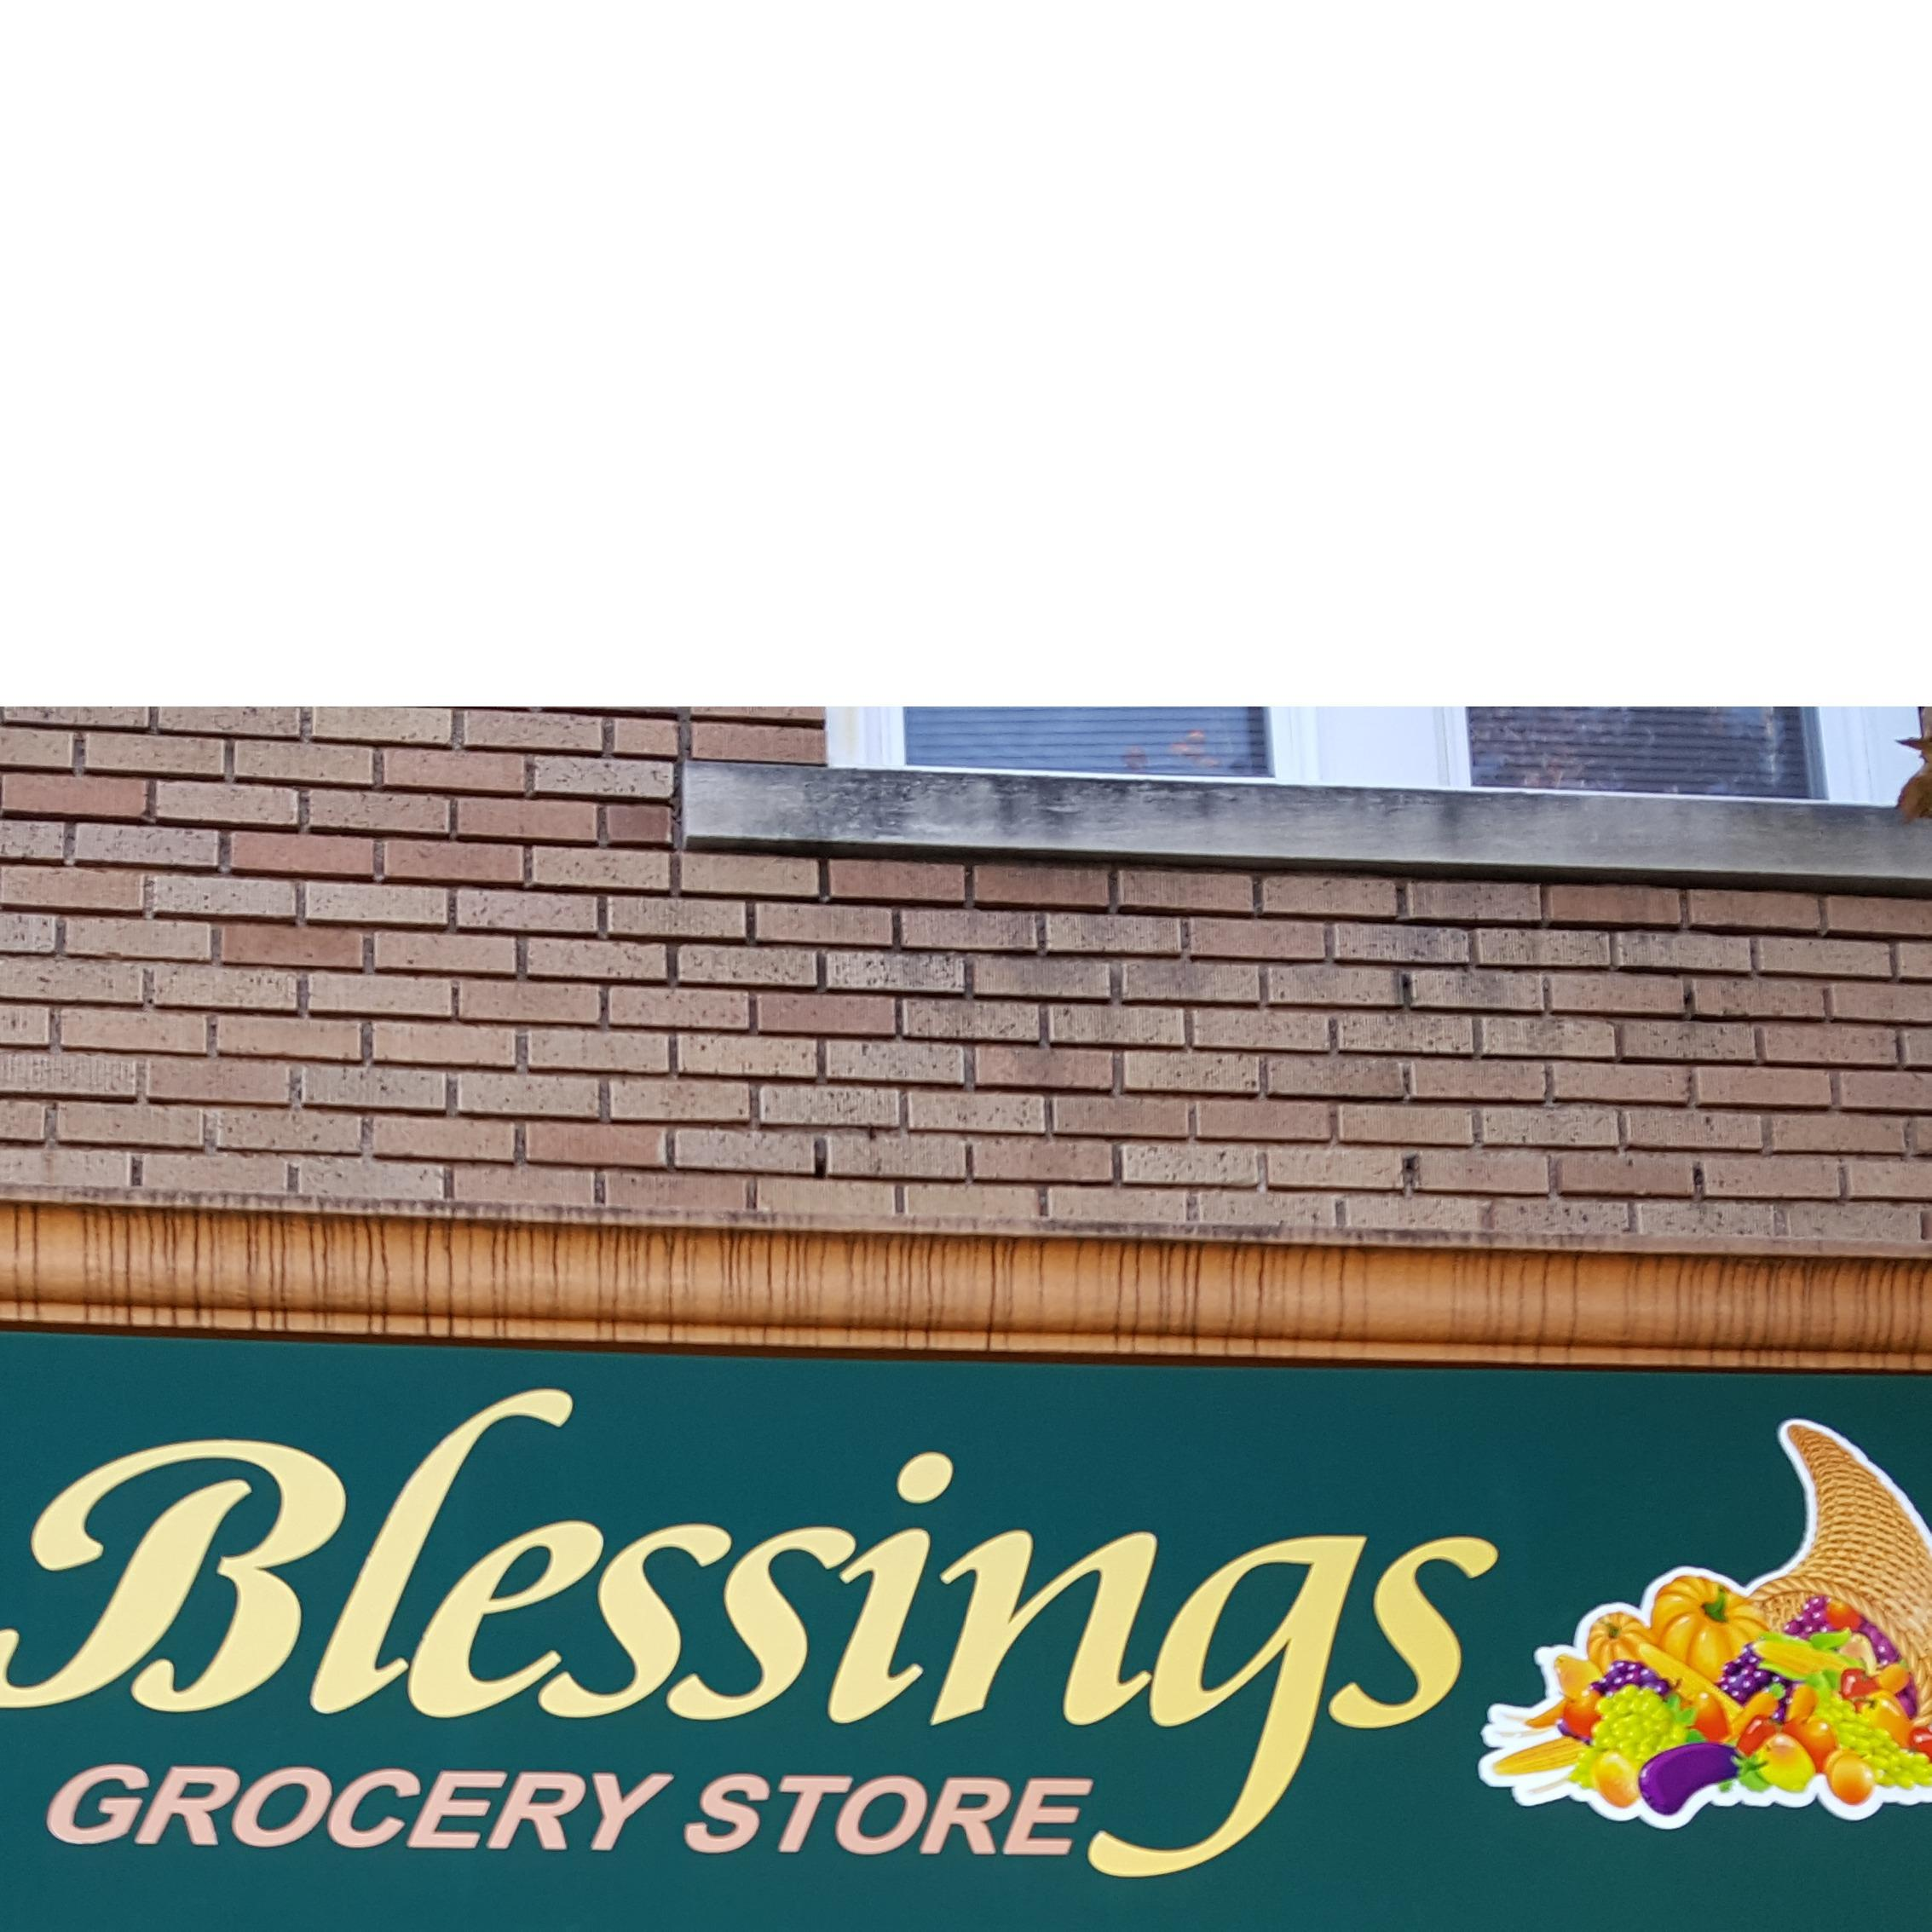 Blessings Grocery Store - Clifton, NJ 07011 - (973)246-6924 | ShowMeLocal.com